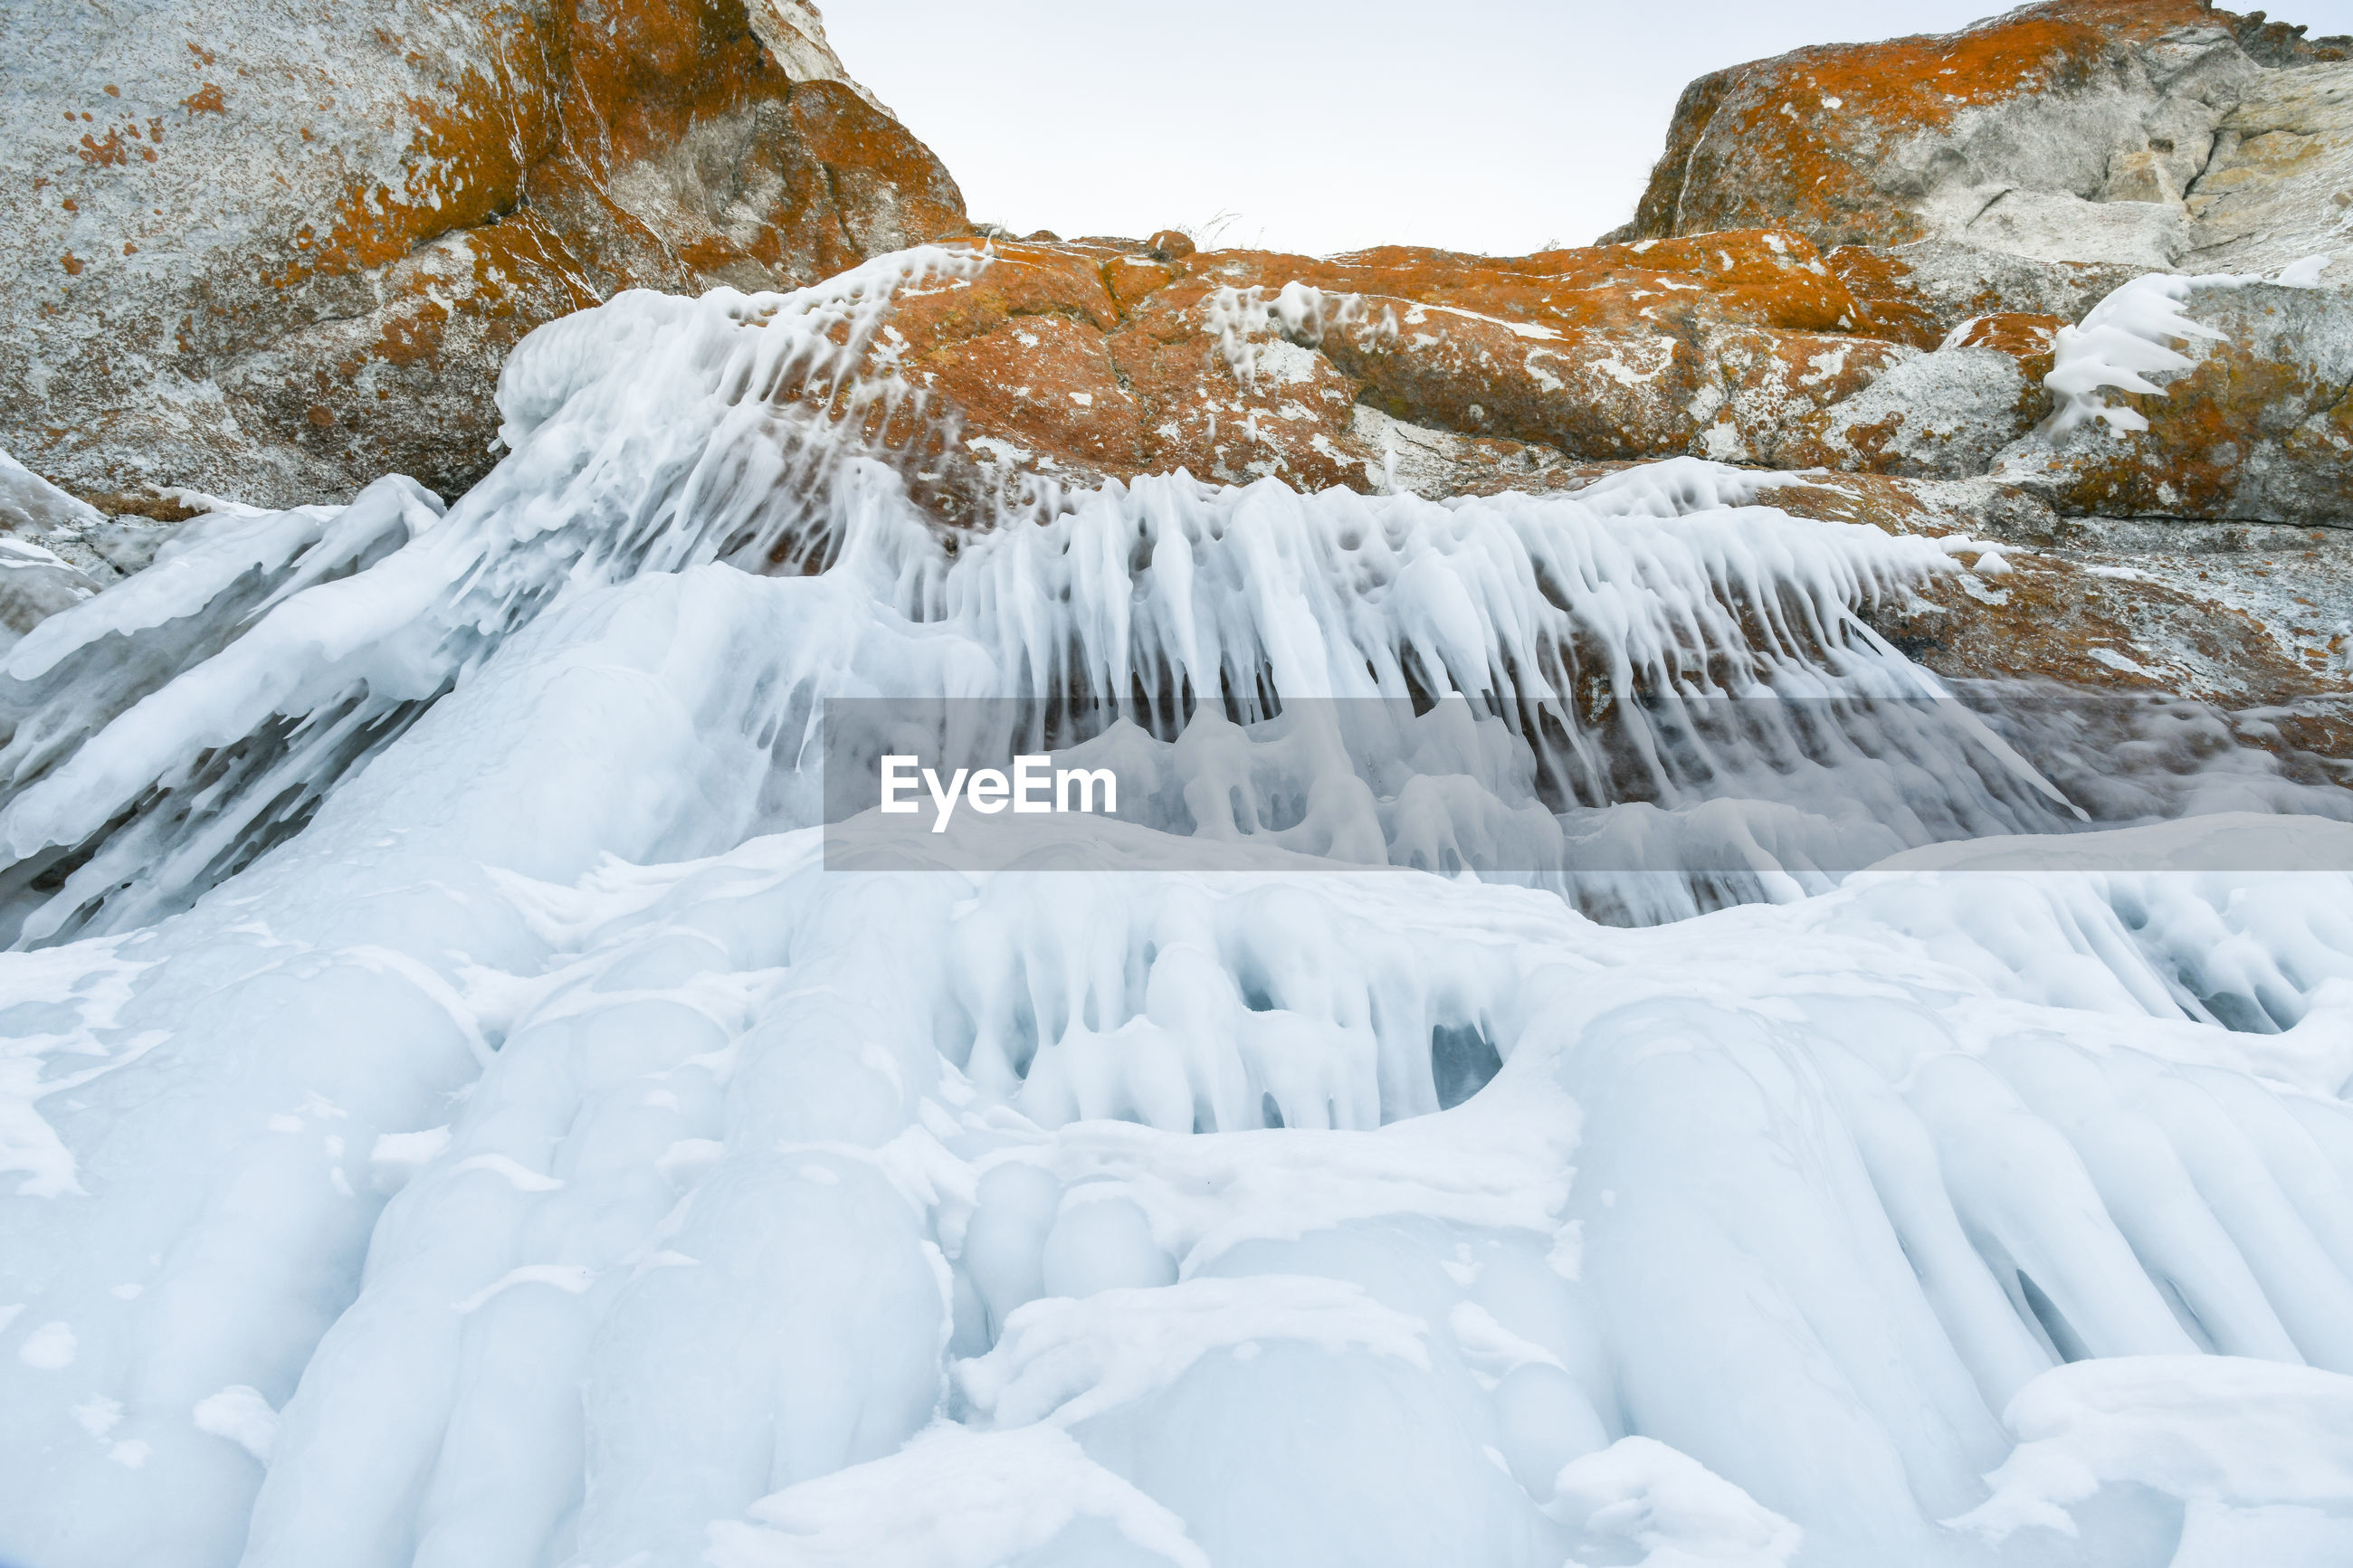 SNOW COVERED LANDSCAPE AGAINST WHITE BACKGROUND